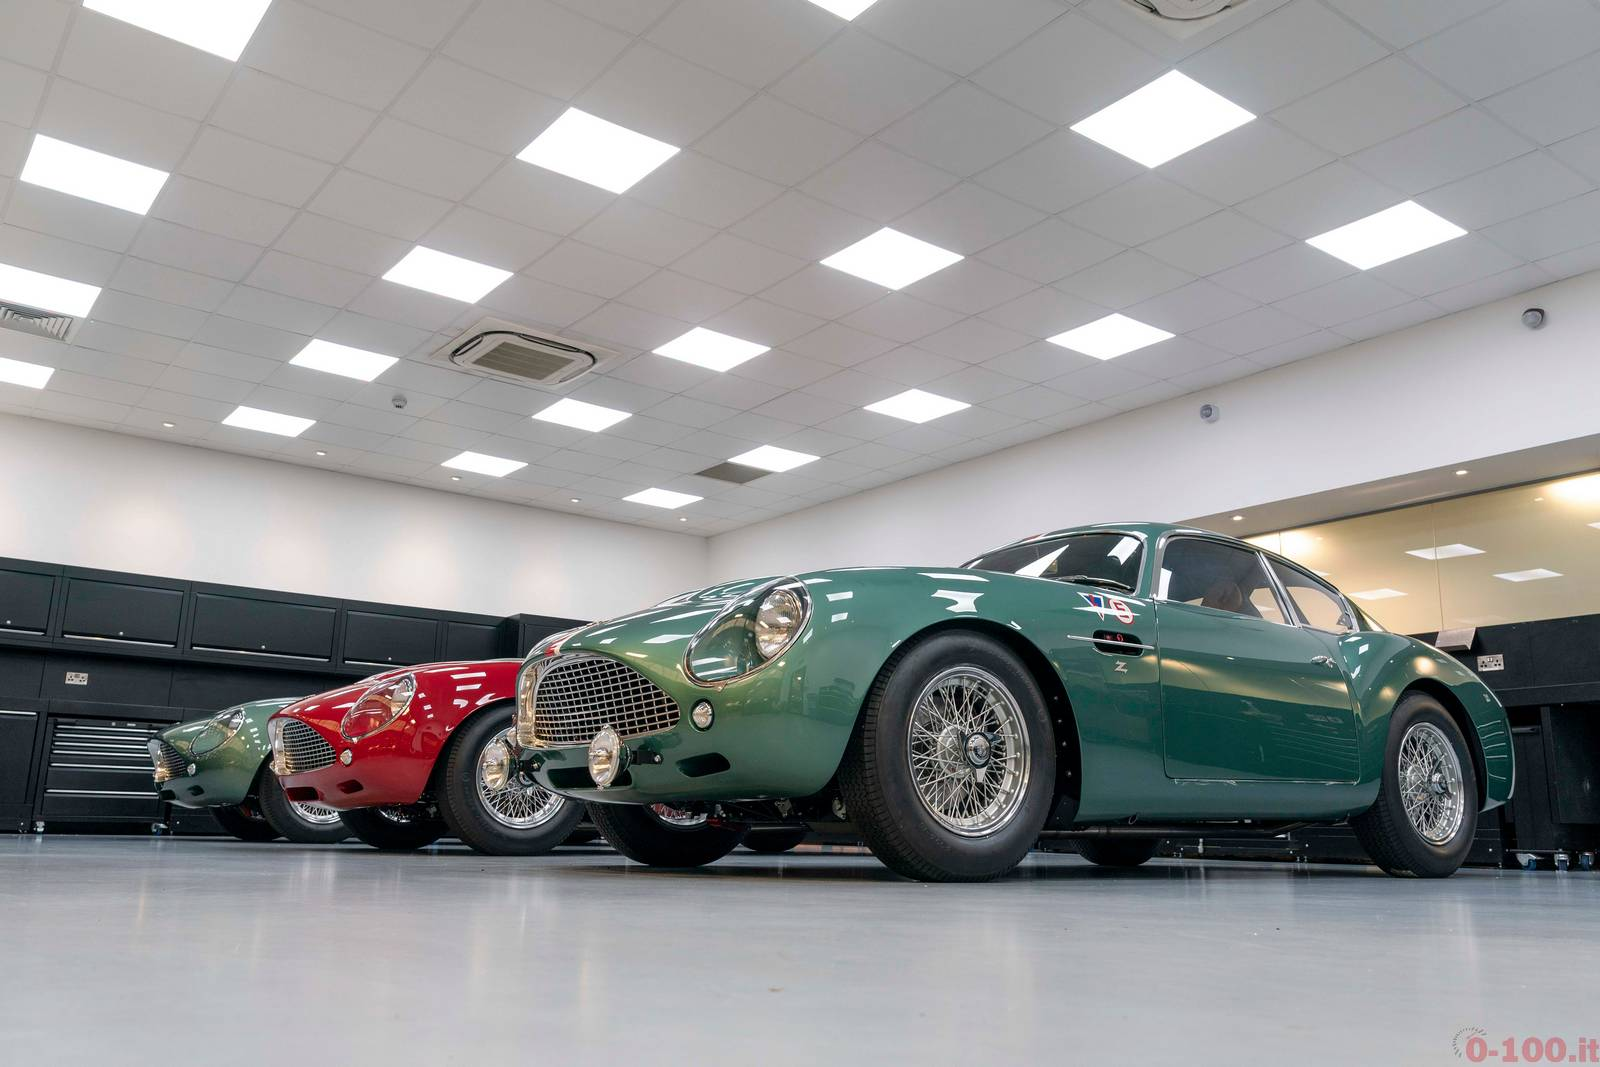 martin_db4_gtz_sanction_3_zagato_centenary_collection_0-100_18